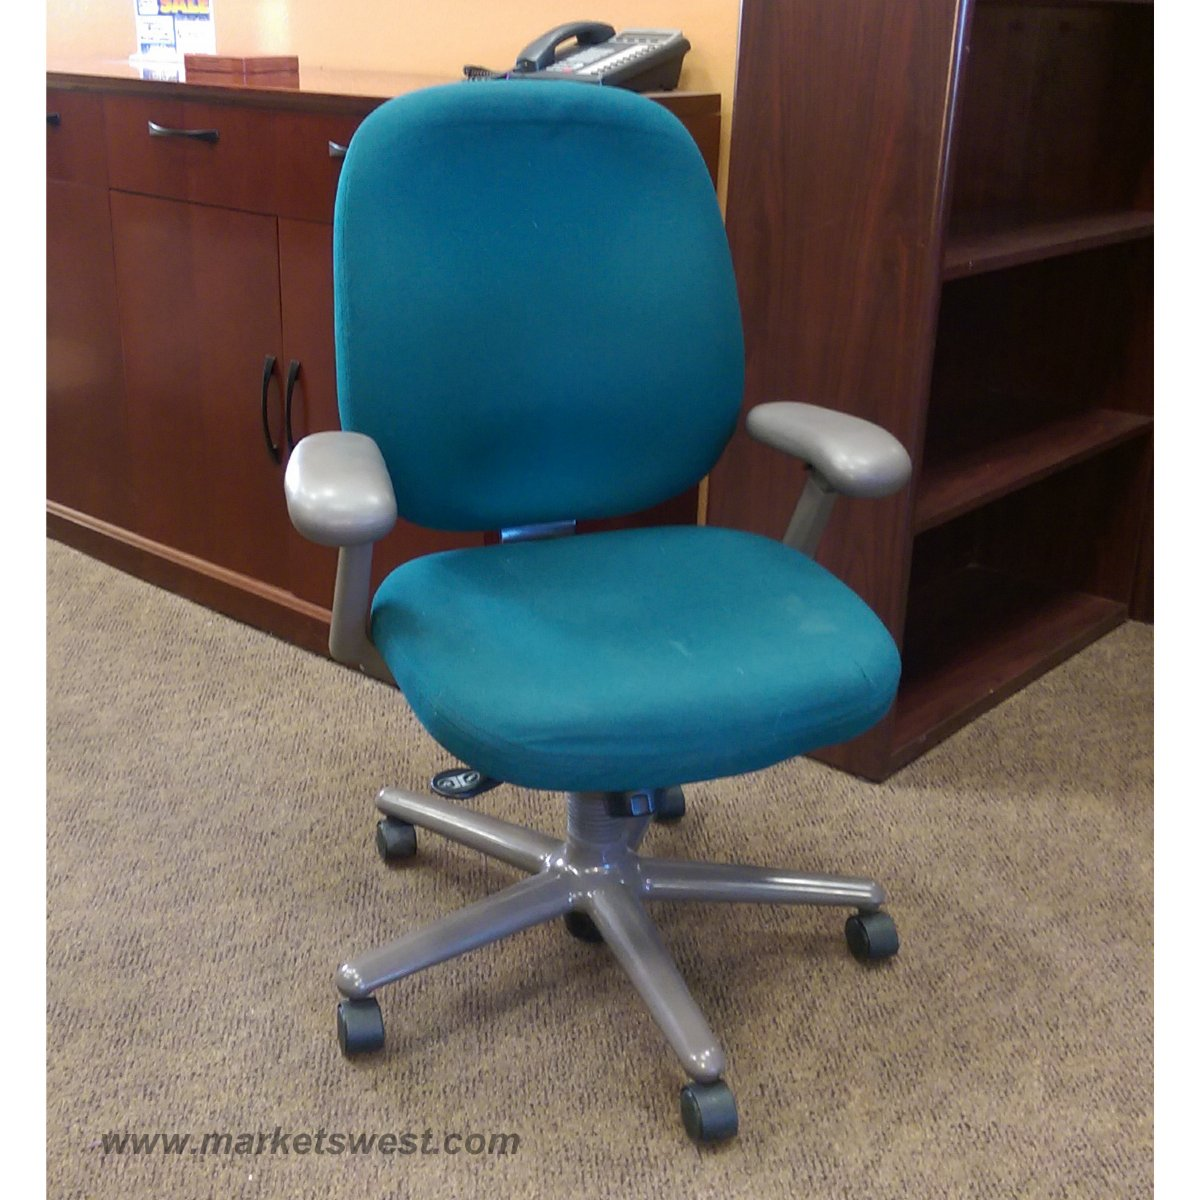 Miller Ergon Desk Chair with Arms Used